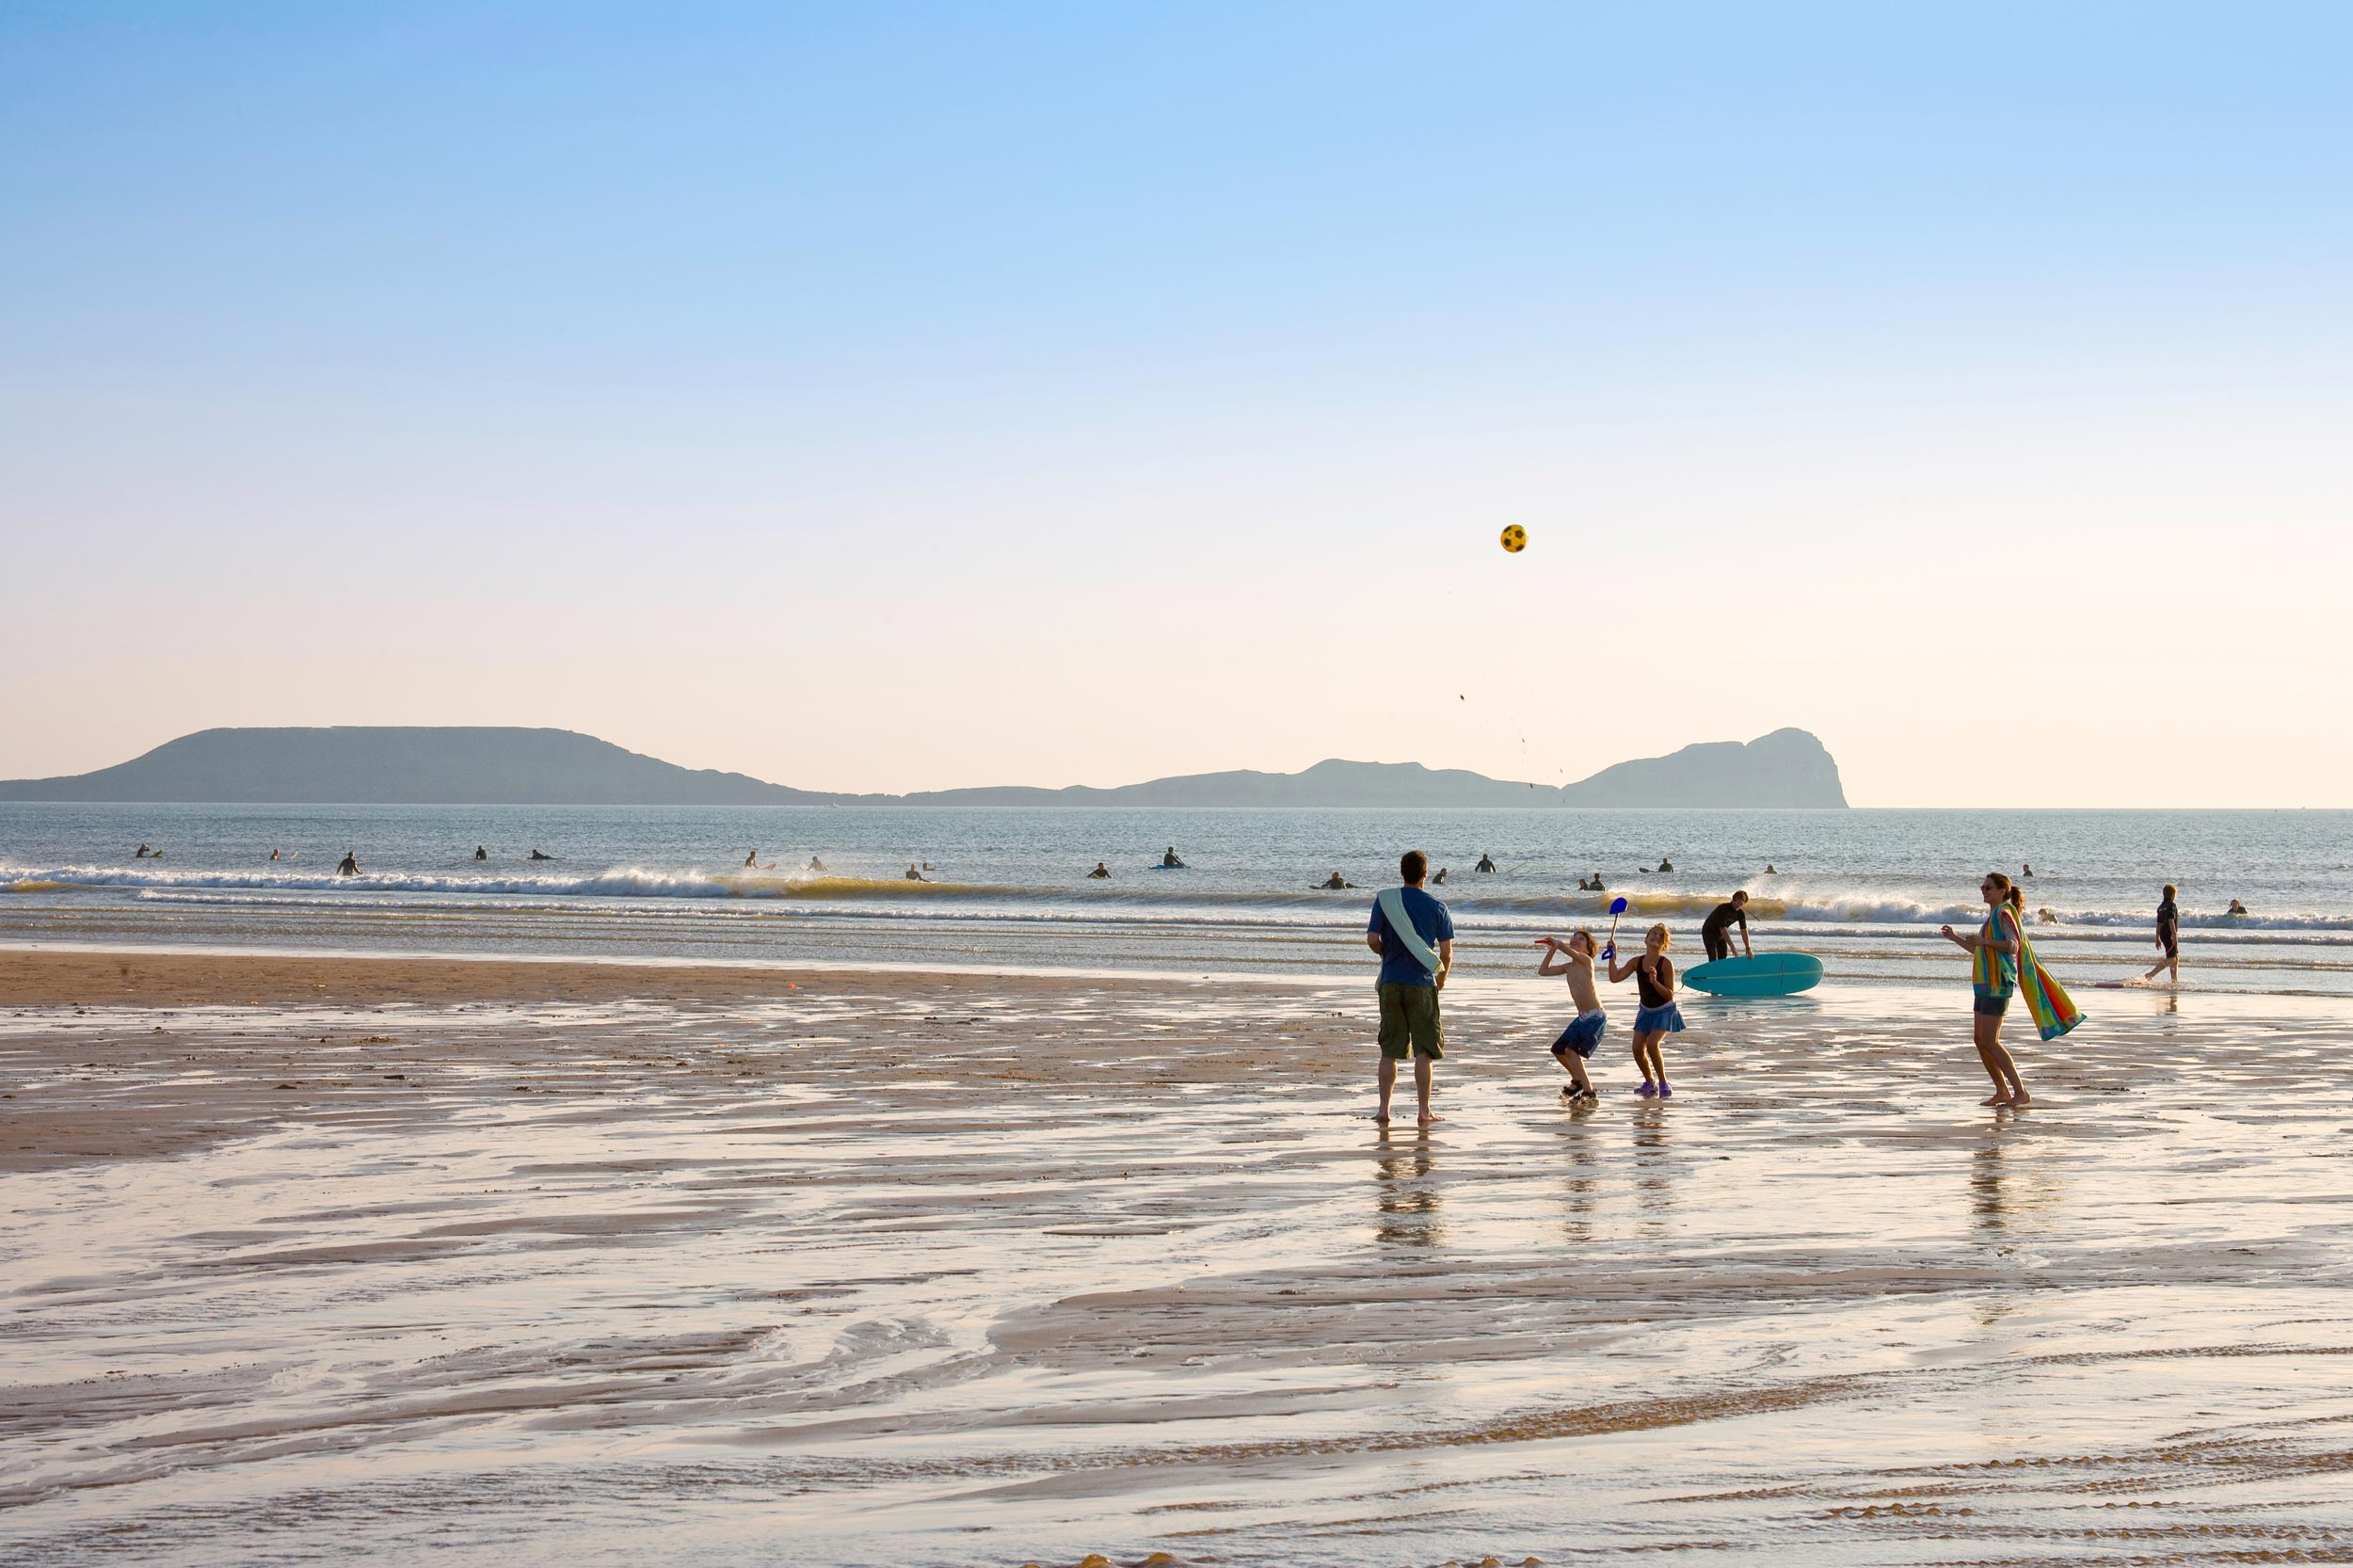 The Worm's Head, Gower peninsula  (Crown copyright 2018 / Visit Wales)